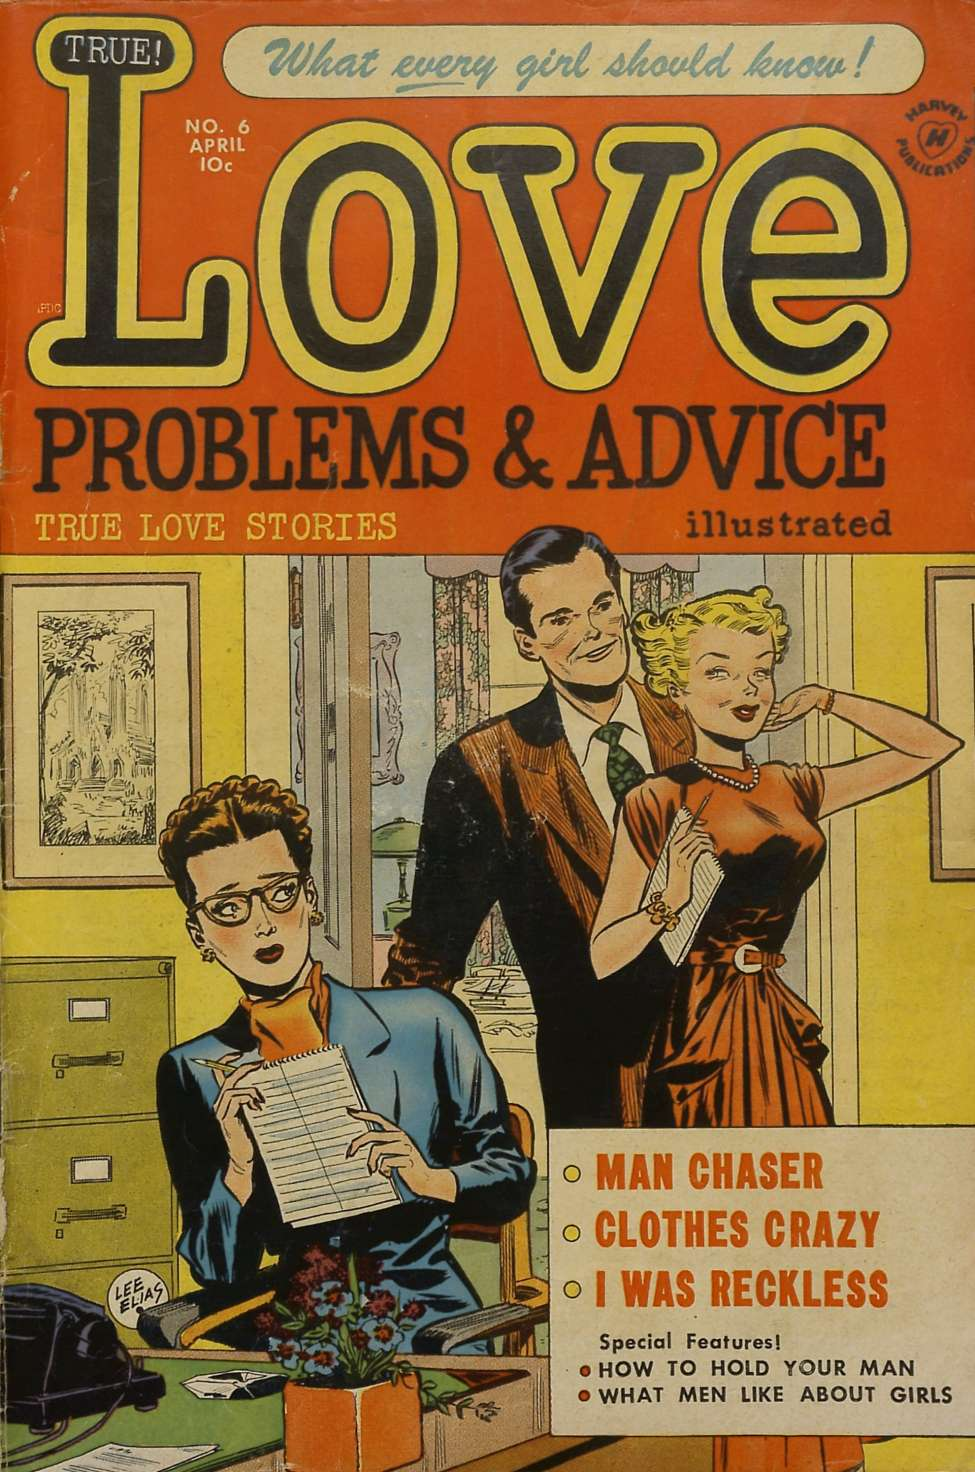 True Love Problems And Advice #6, Harvey